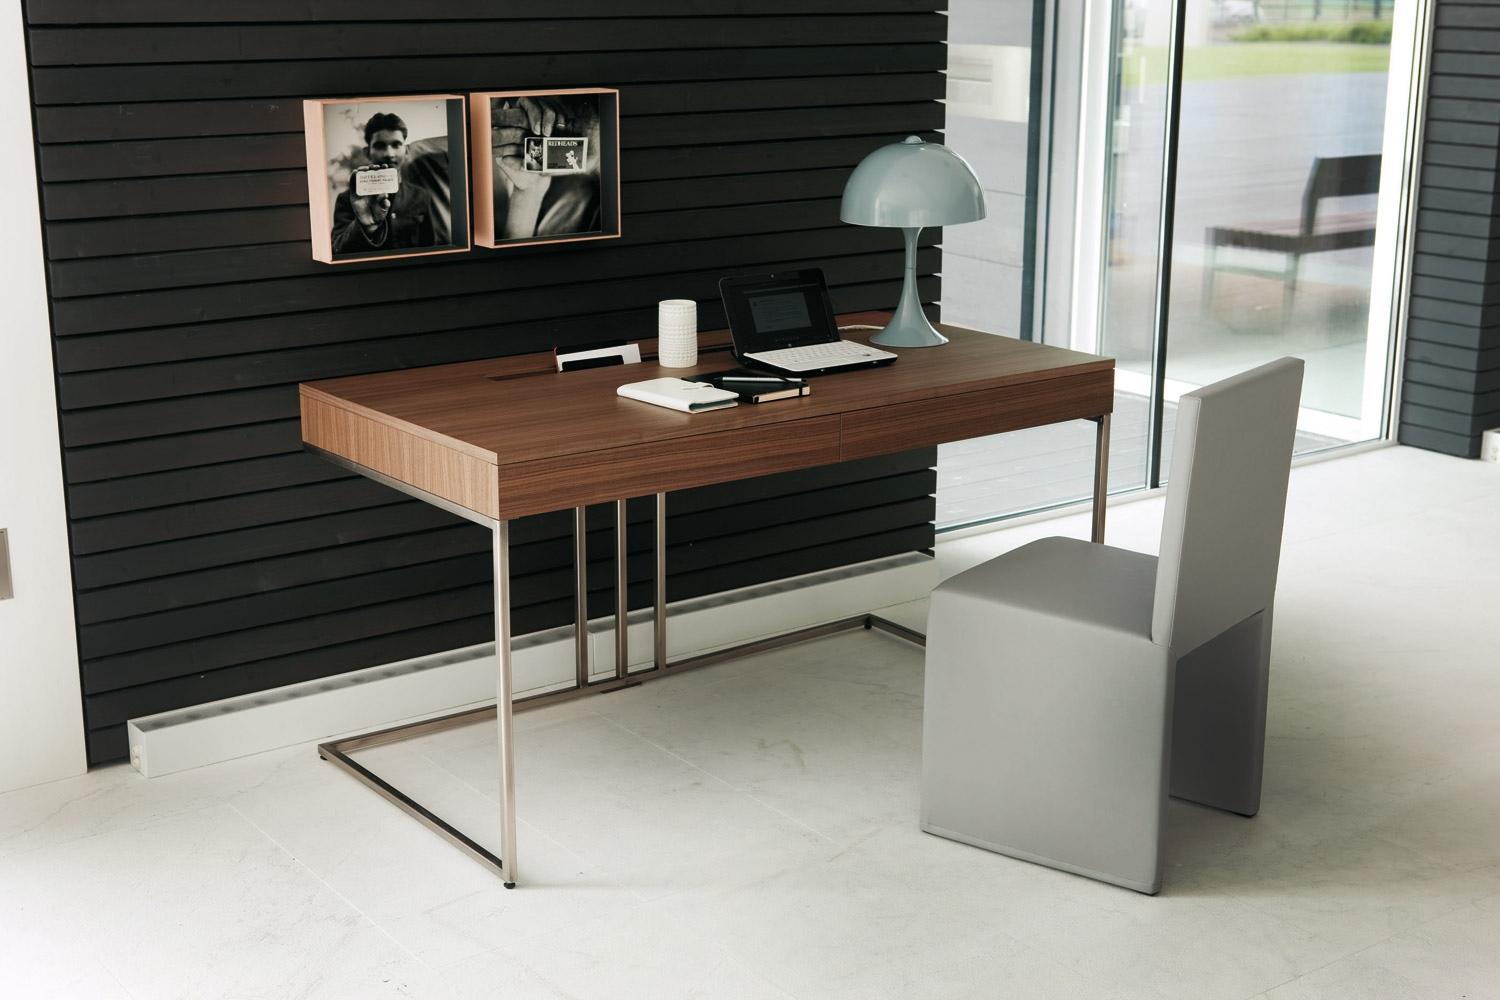 http://cdn.home-designing.com/wp-content/uploads/2014/05/17-Contemporary-desk.jpeg